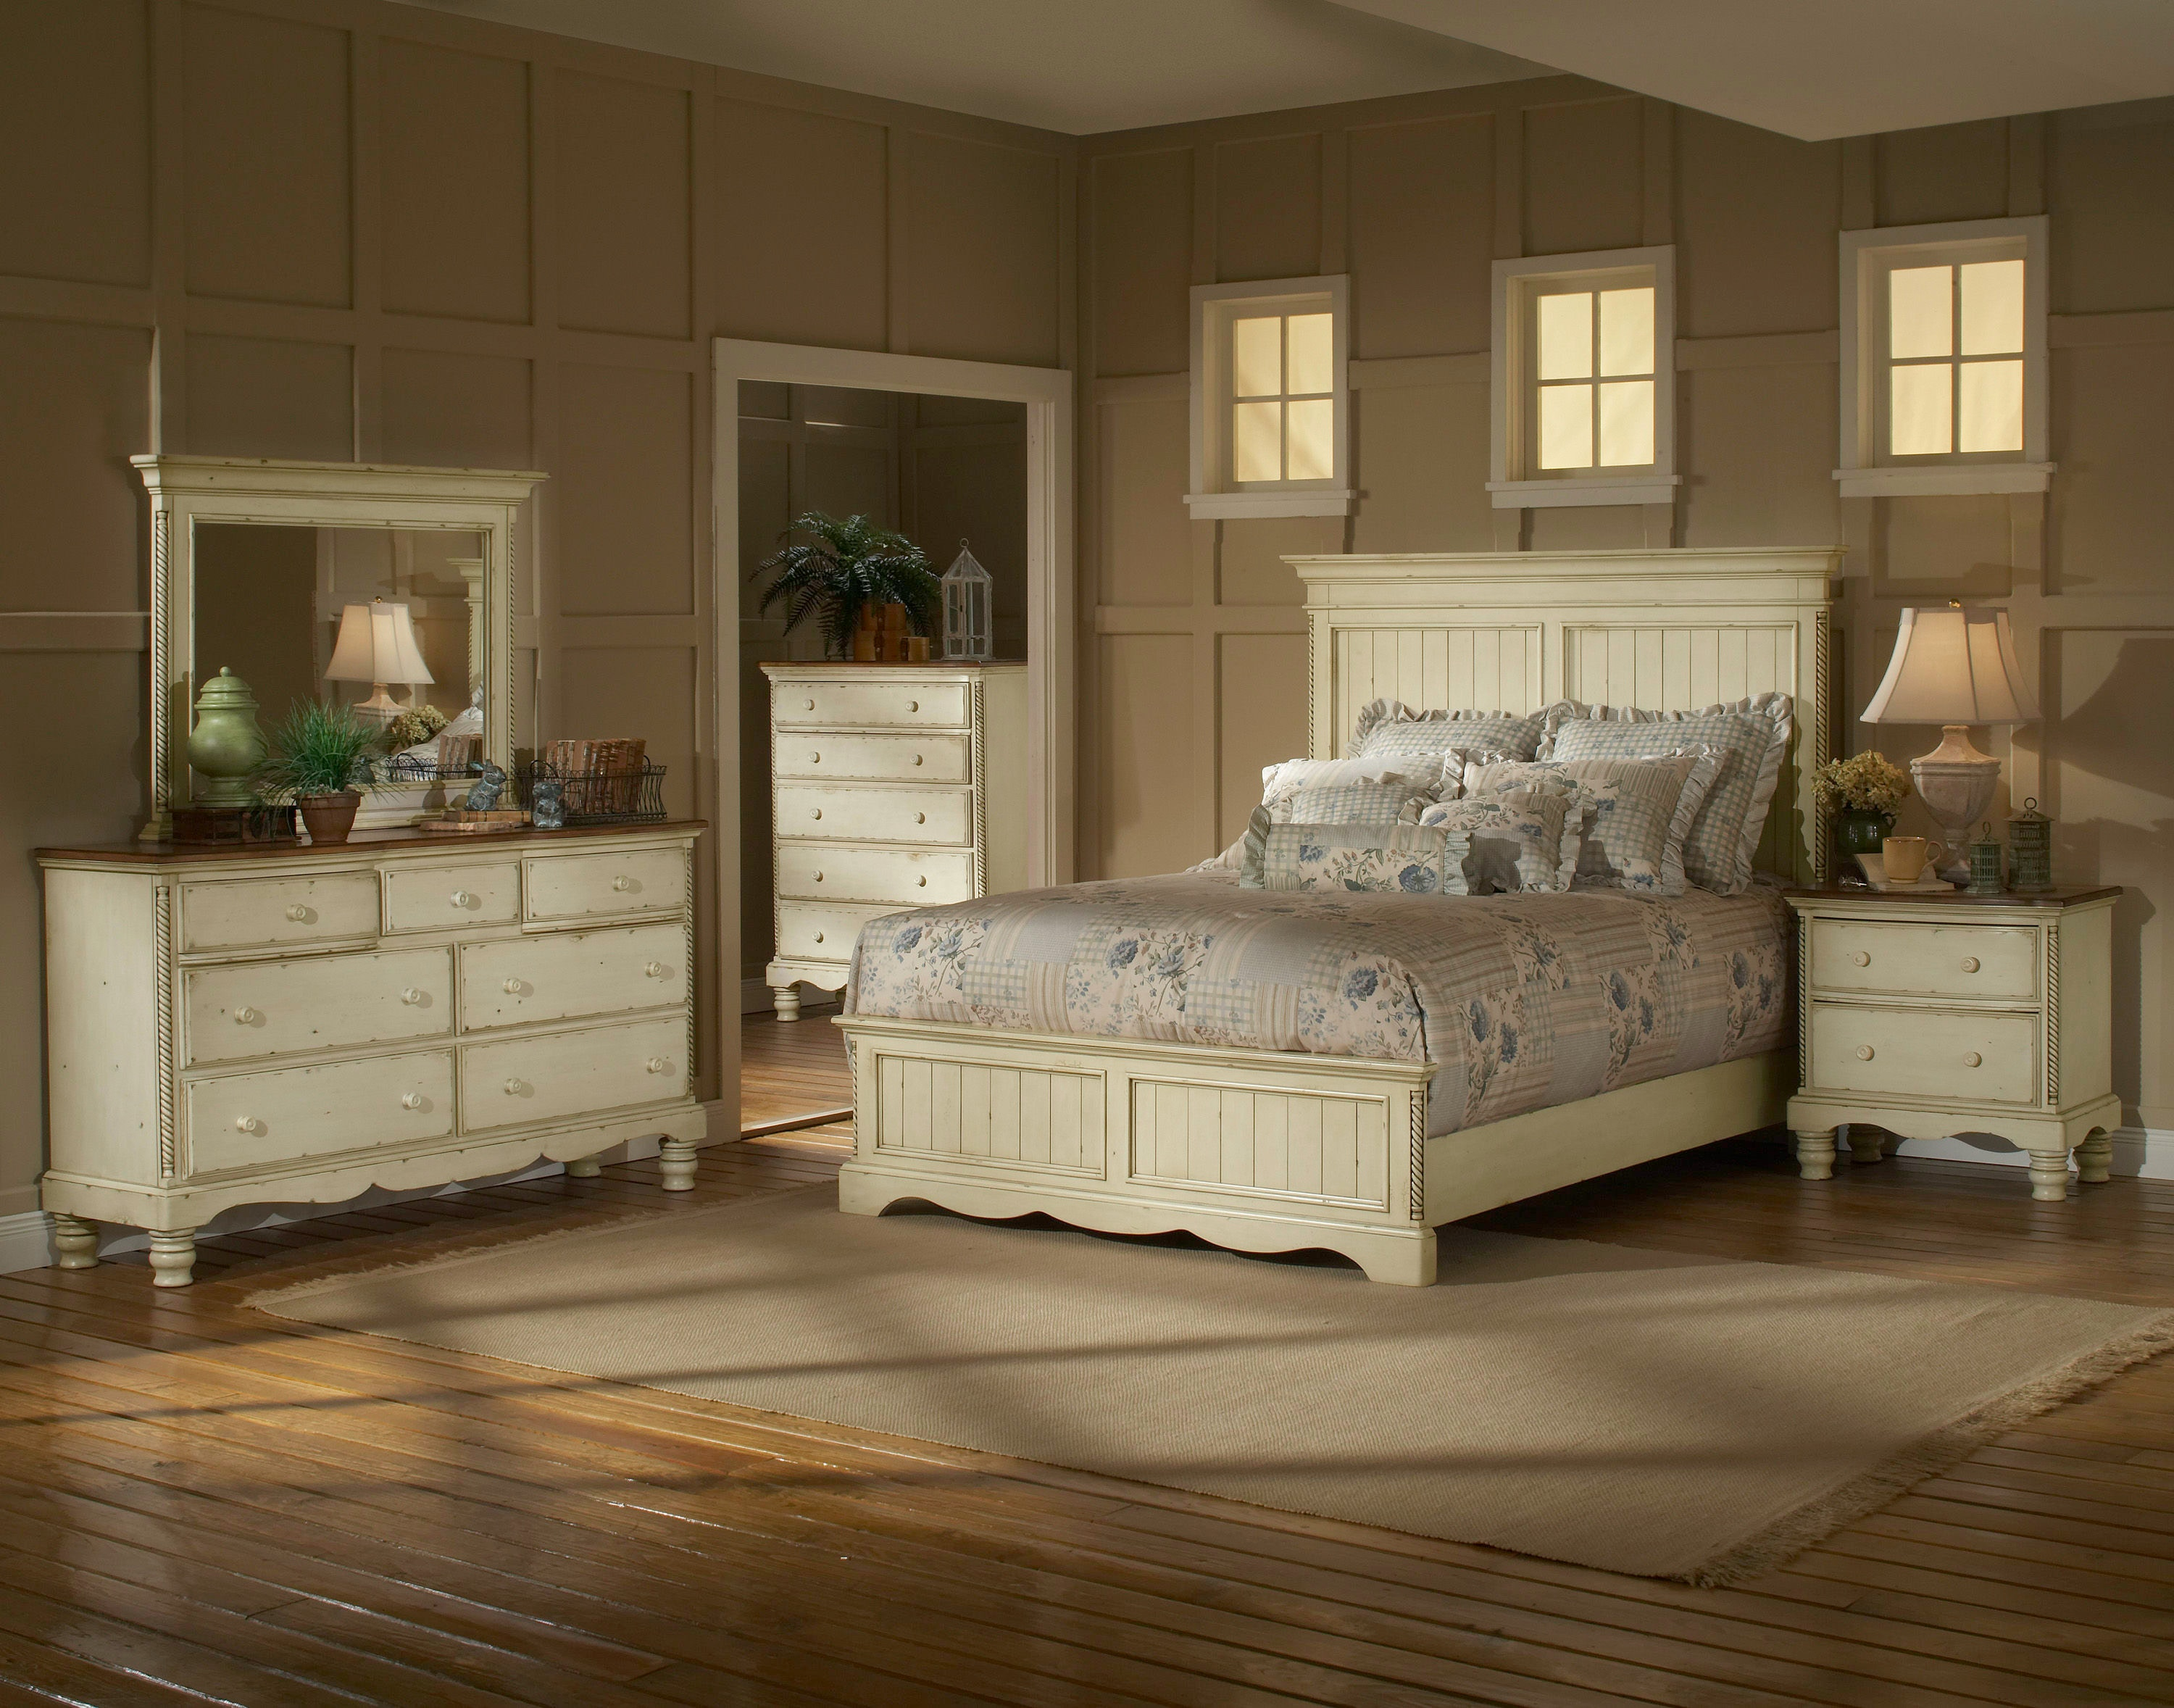 Hillsdale Furniture Bedroom Wilshire Panel Bed Headboard   King 1172 673 At Carol  House Furniture